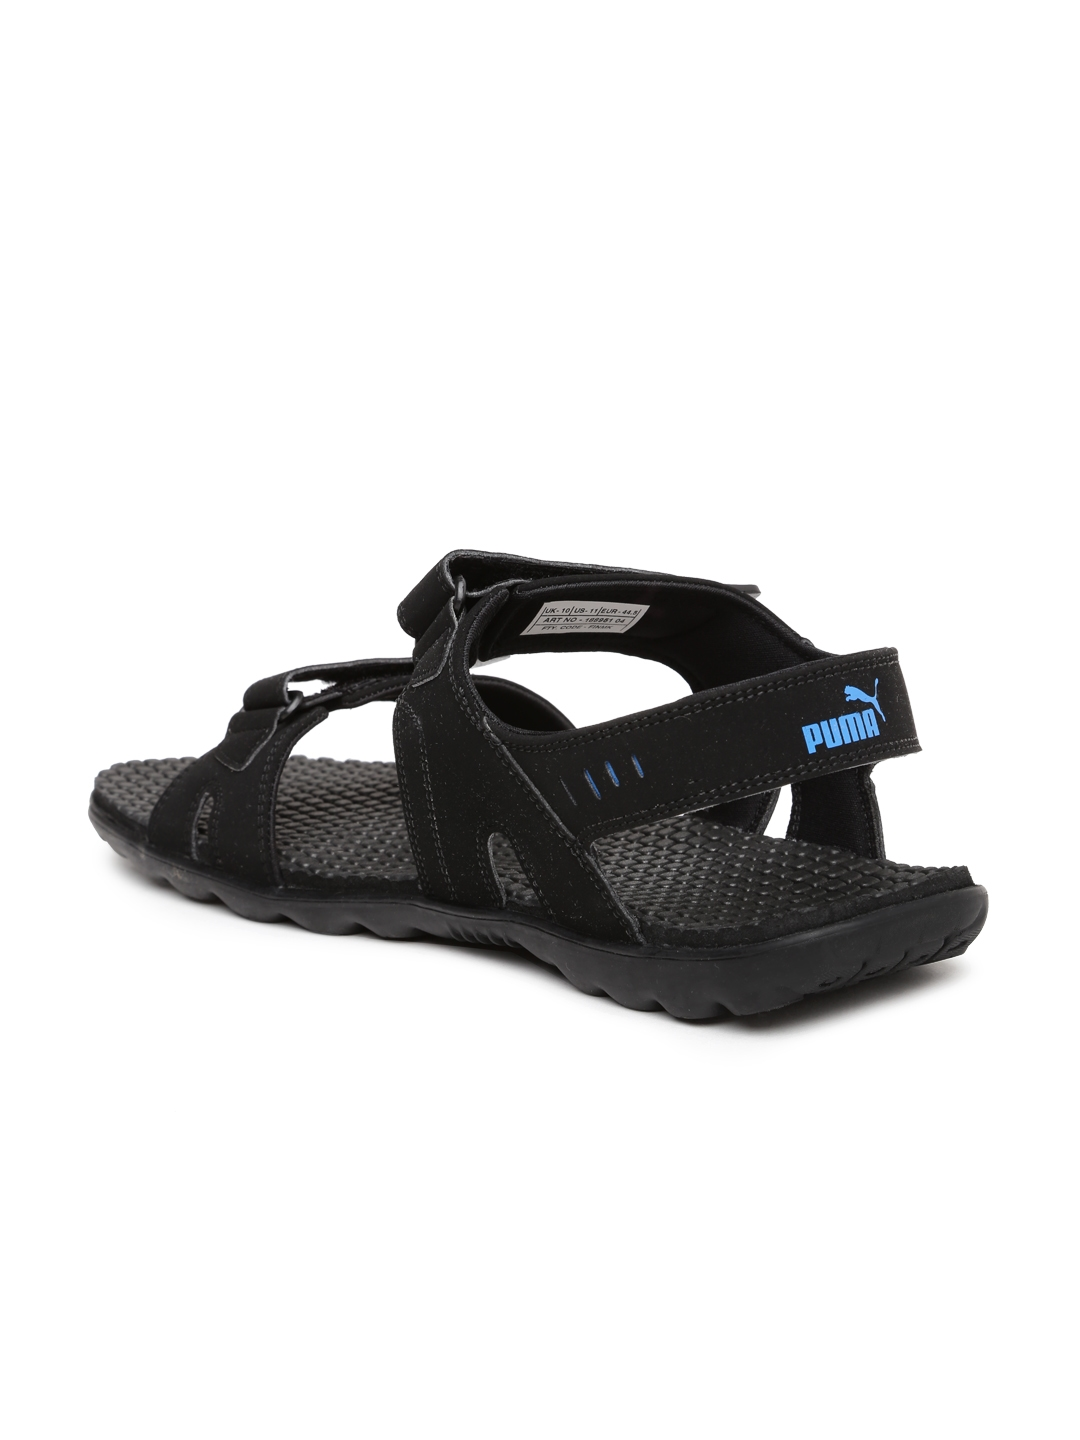 Buy PUMA Men Black Silicis Buck DP Sports Sandals - Sports Sandals ... 3de6bbcedf